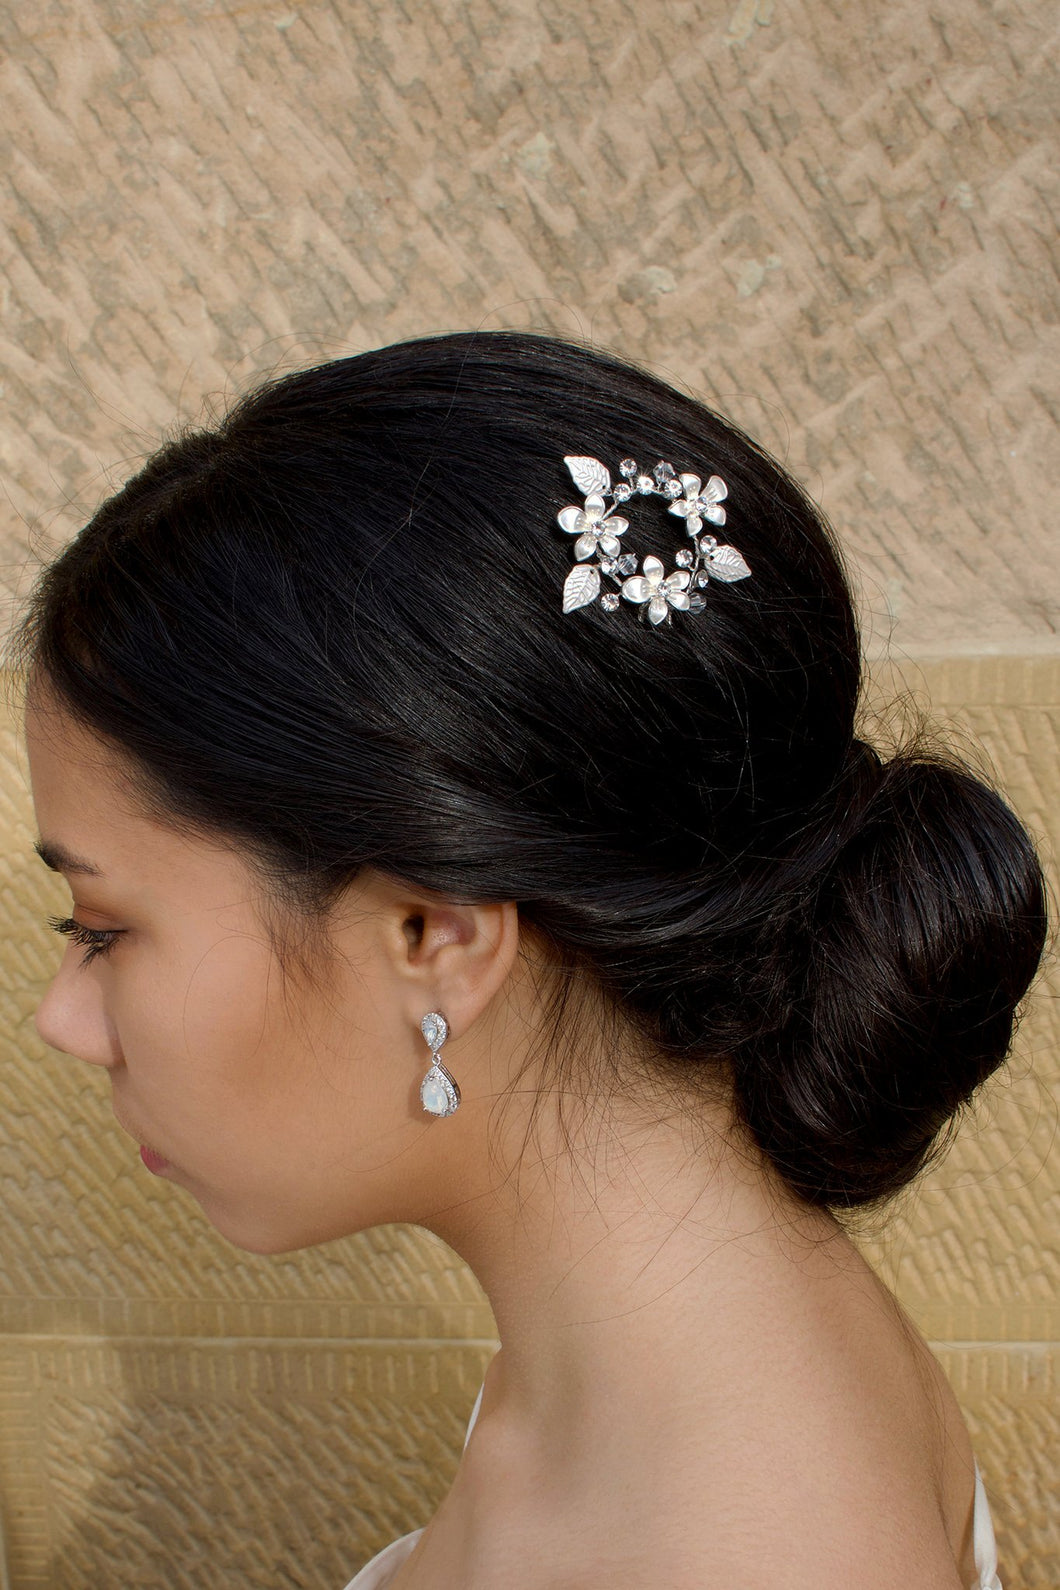 Ring of silver leaves and flowers hairpin worn by a dark hair bride on the side of the head with a sandstone background